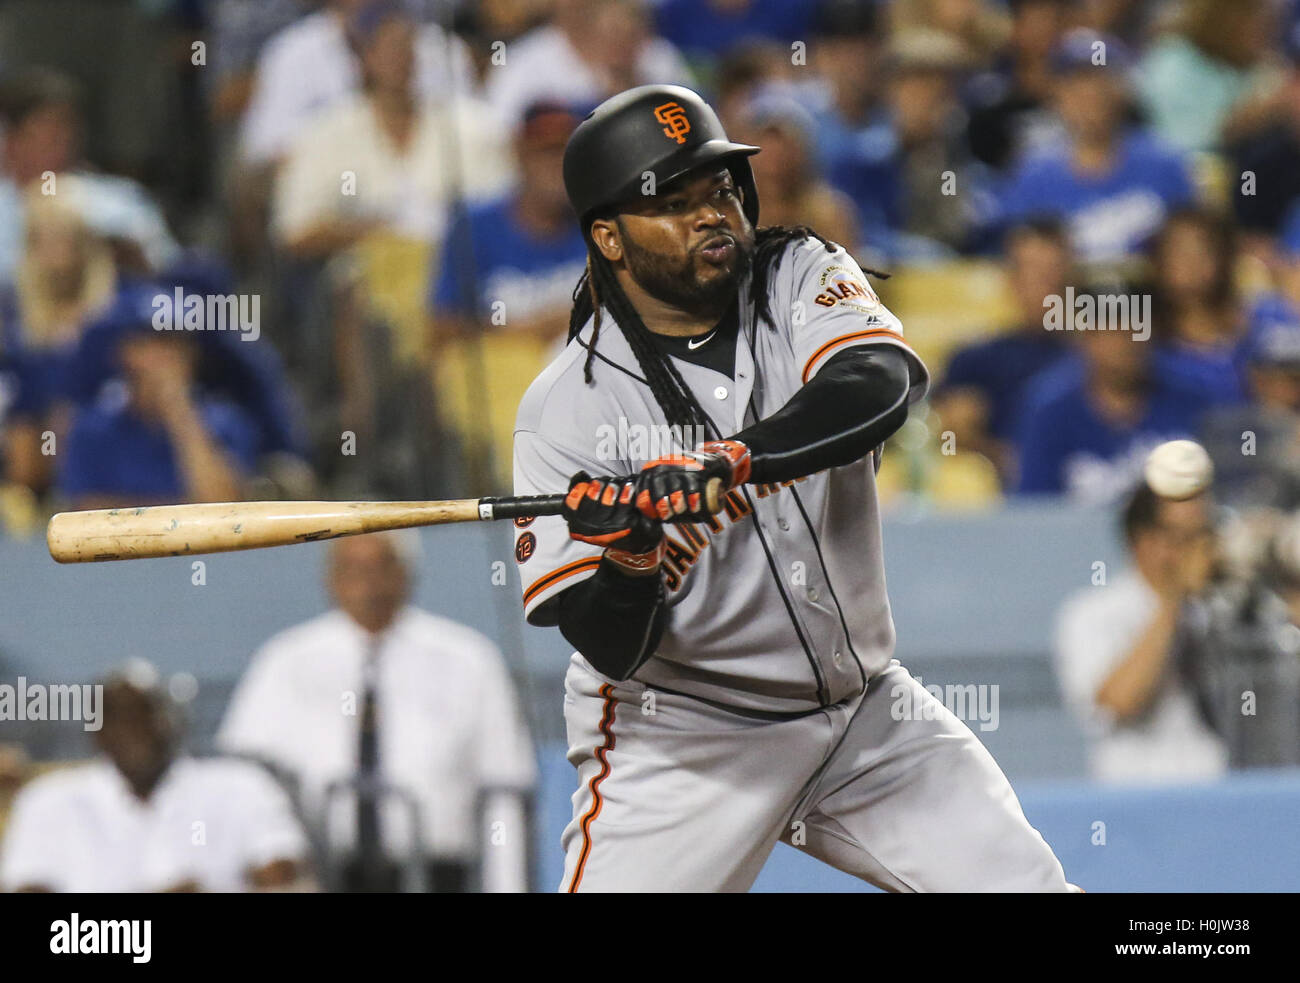 Los Angeles, California, USA. Xx Settembre, 2016. San Francisco Giants catcher Johnny Cueto colpisce la palla contro Immagini Stock